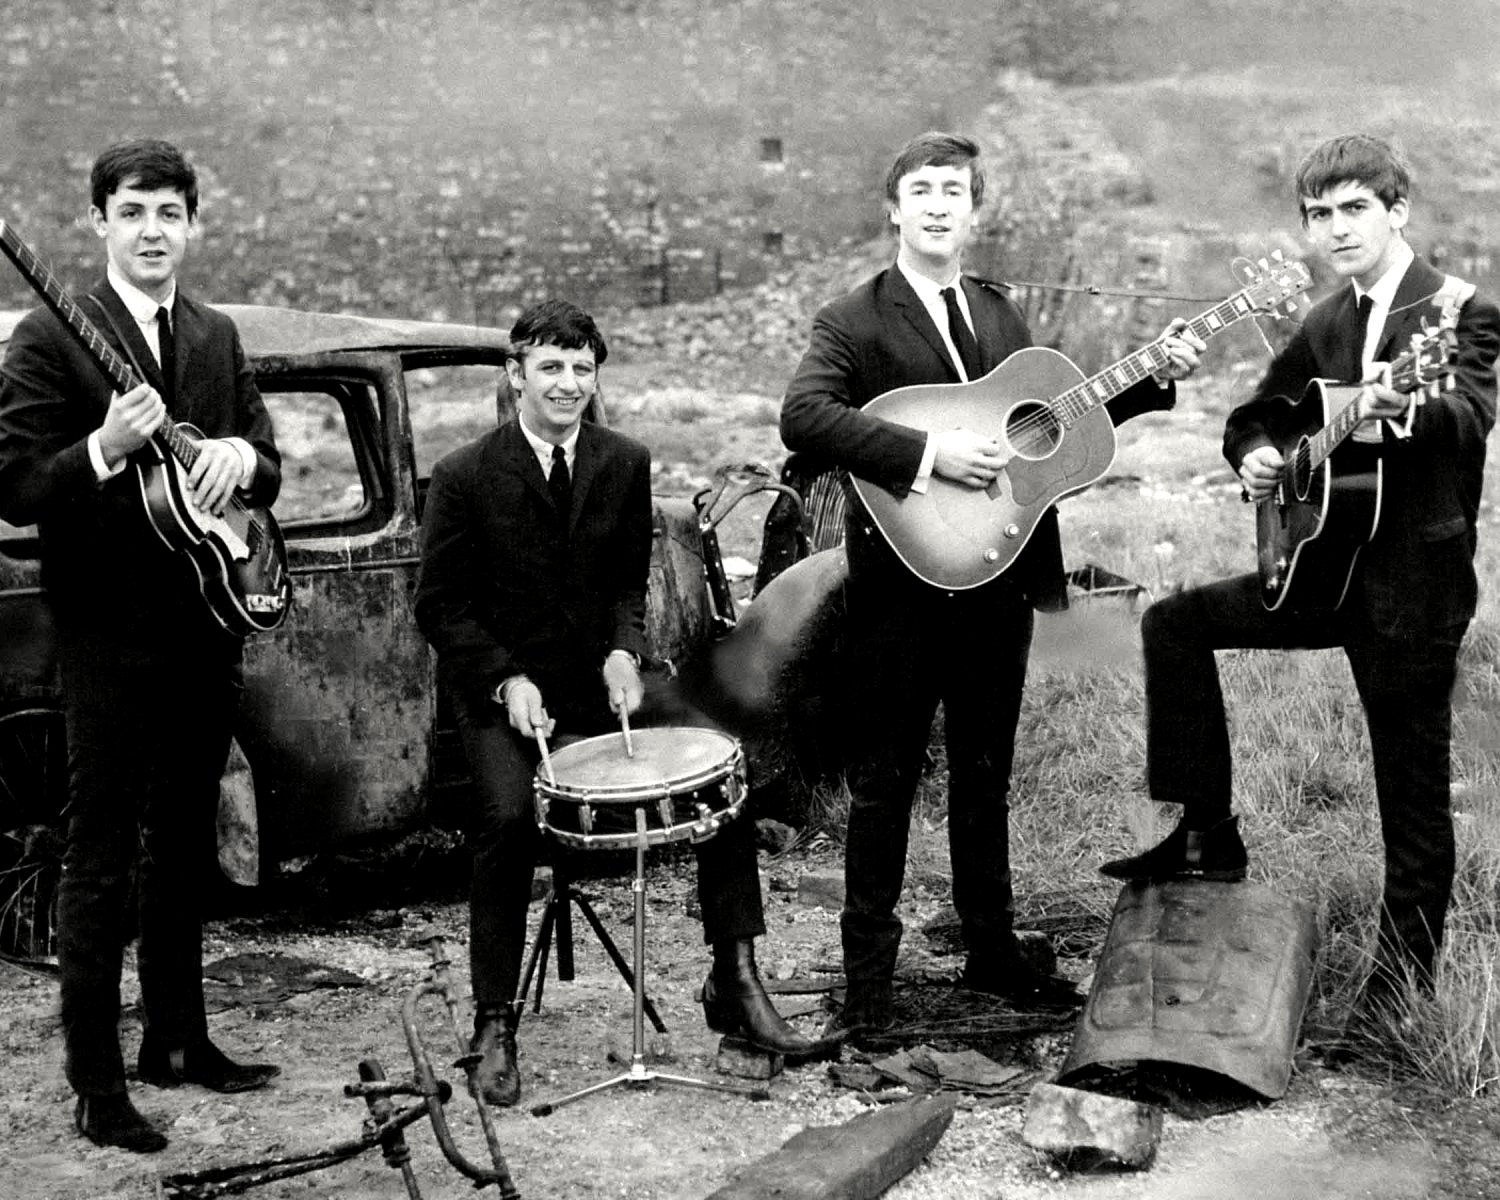 THE BEATLES PAUL McCARTNEY JOHN LENNON GEORGE HARRISON RINGO STARR - 8X10 PHOTO (ZZ-012)